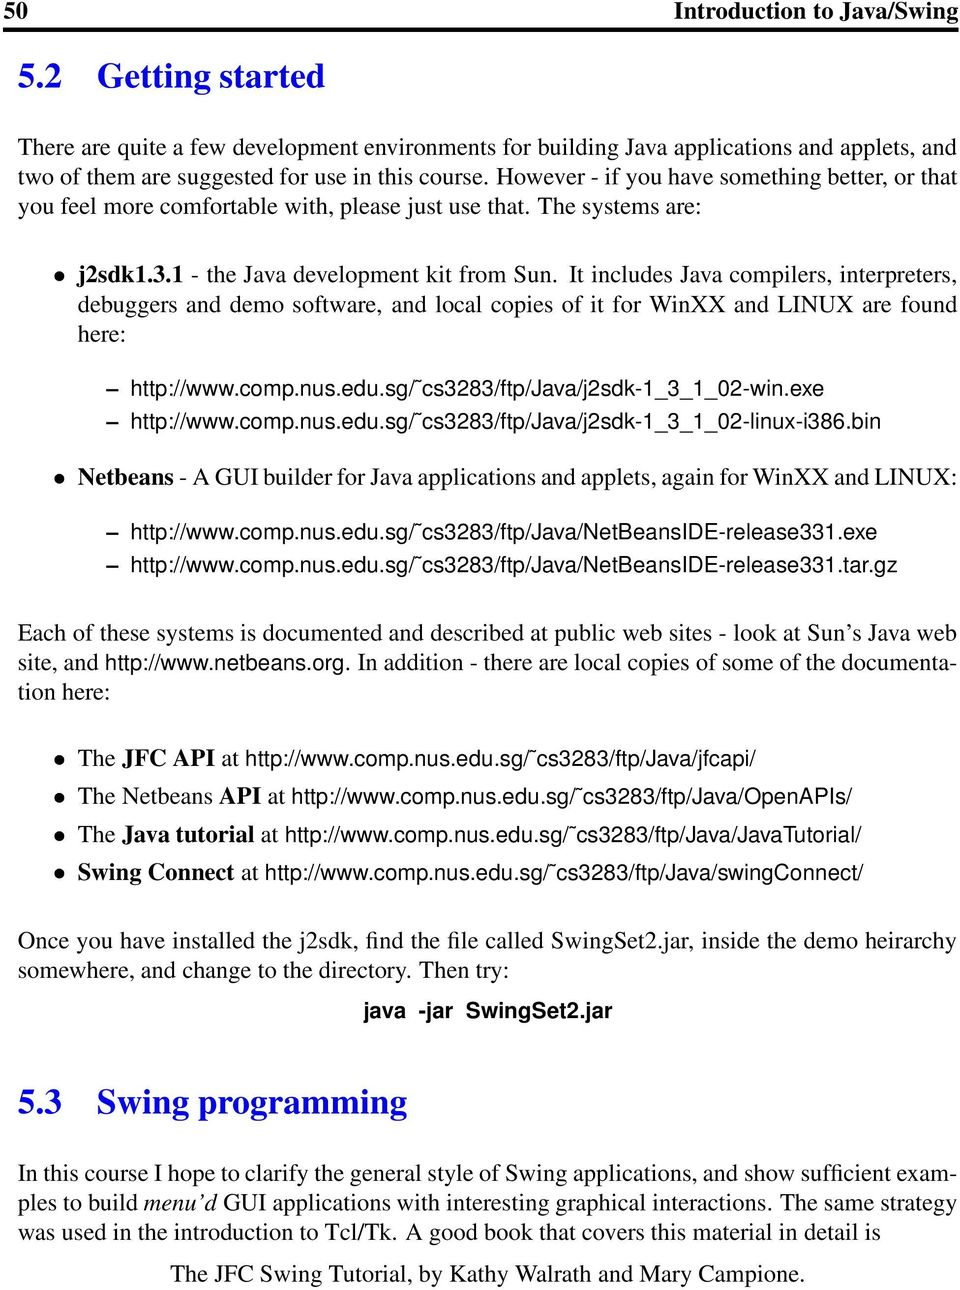 Java is commonly used for deploying applications across a